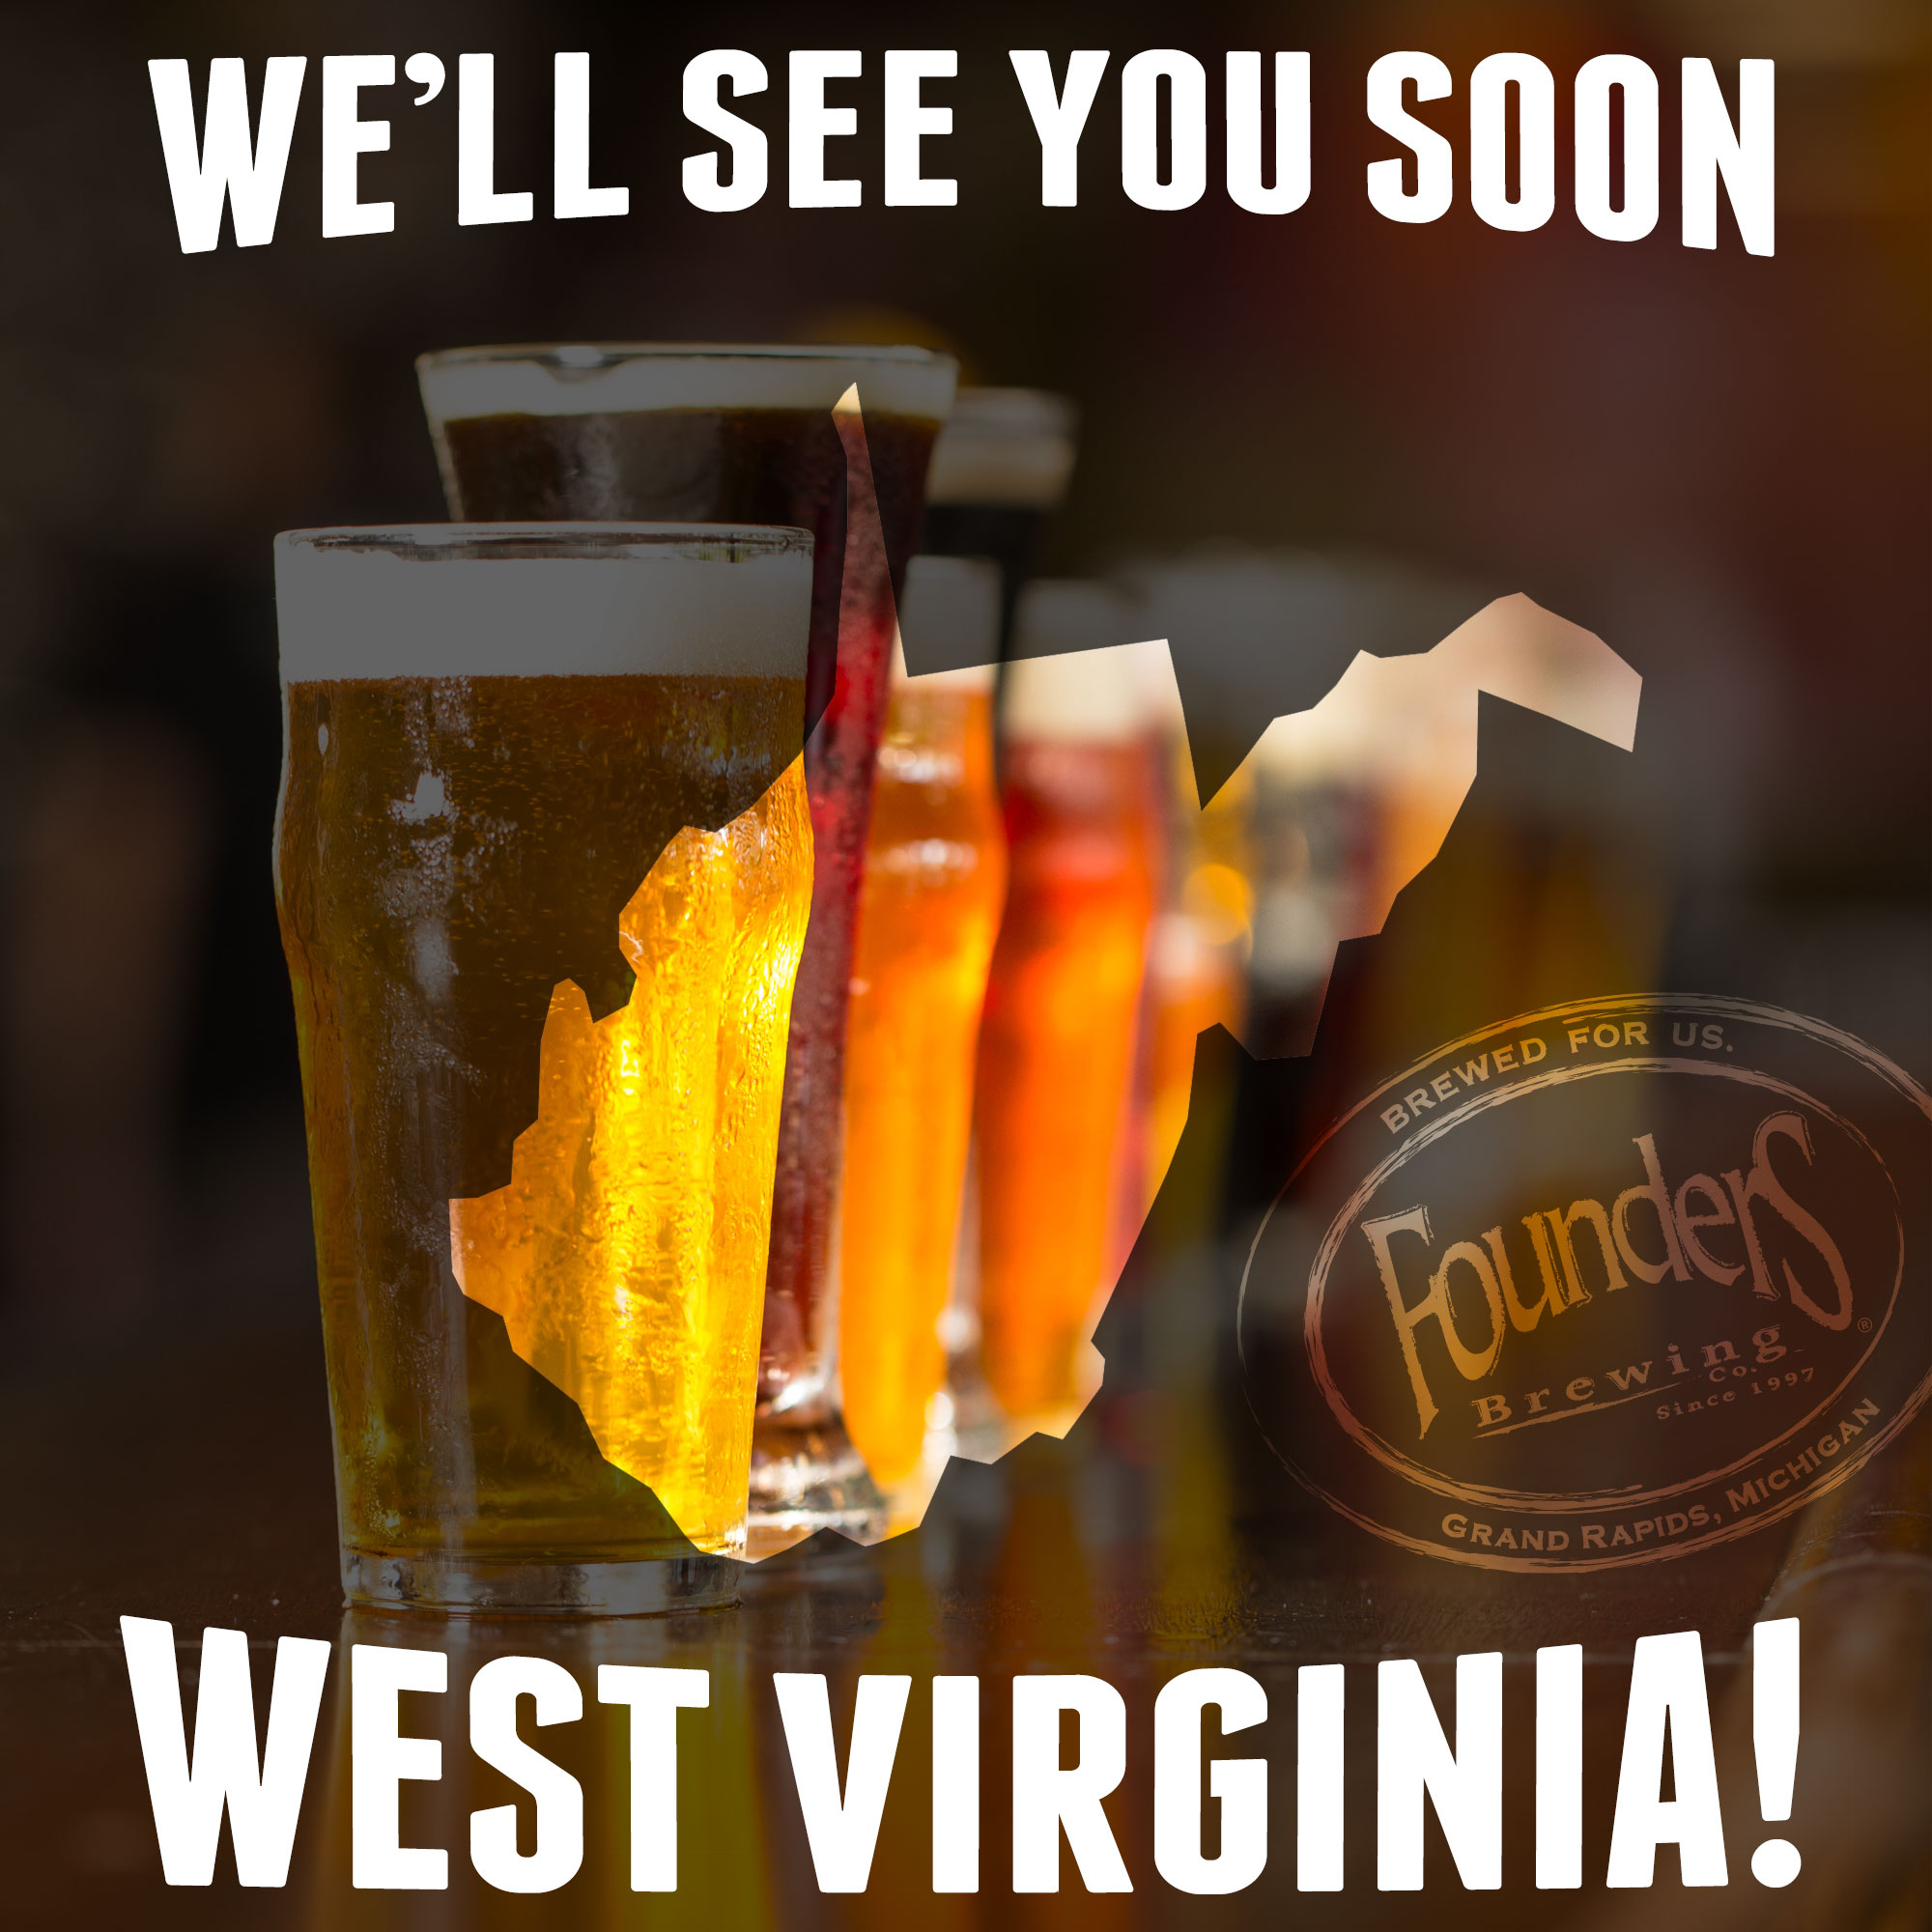 Founders promotion showing that they're coming to West Virginia